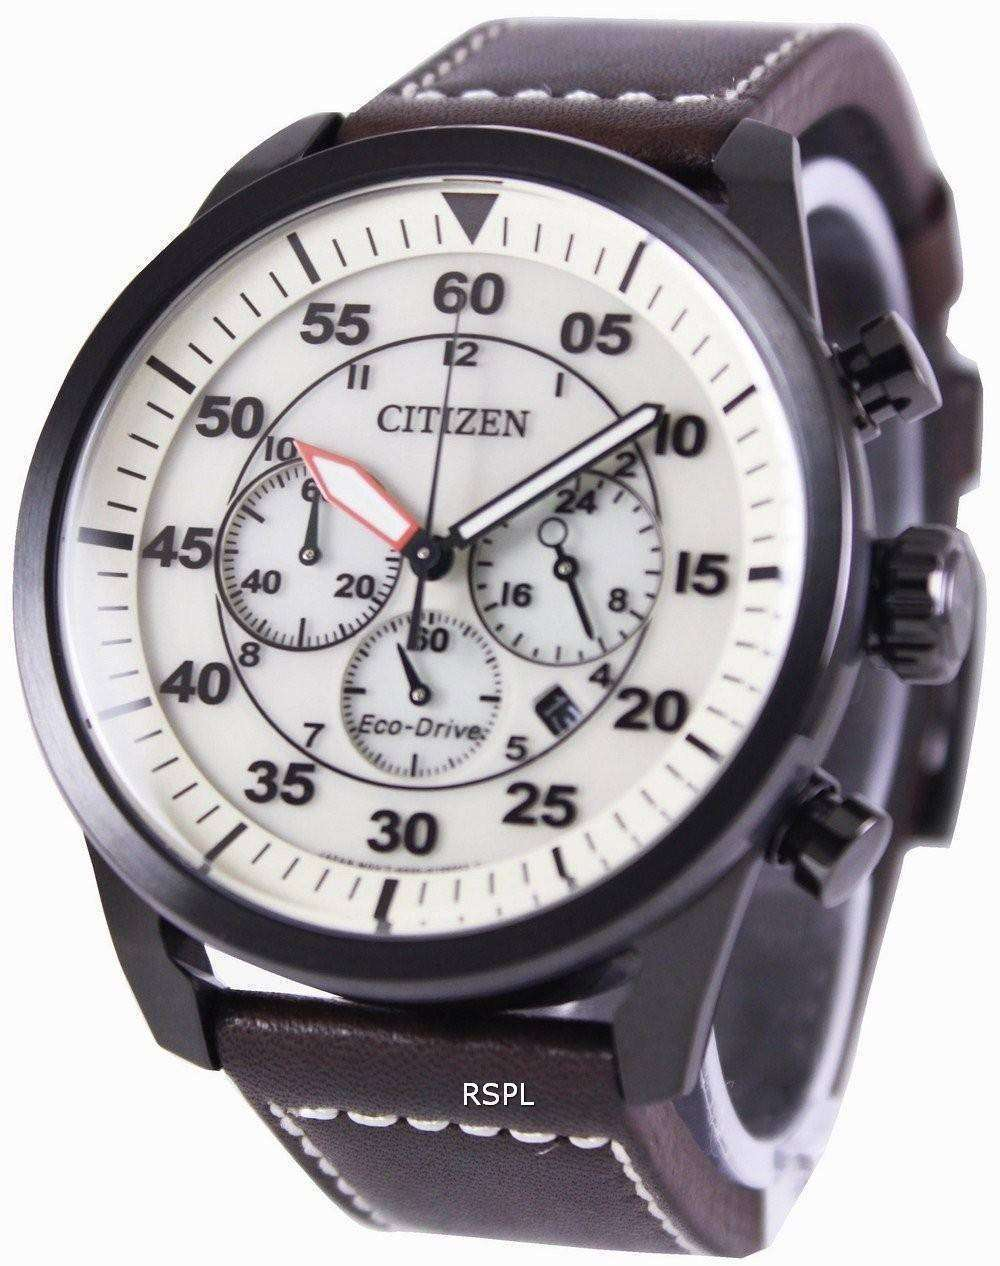 reputable site 1f067 069d2 Citizen Eco-Drive Aviator Chronograph CA4215-04W Mens Watch